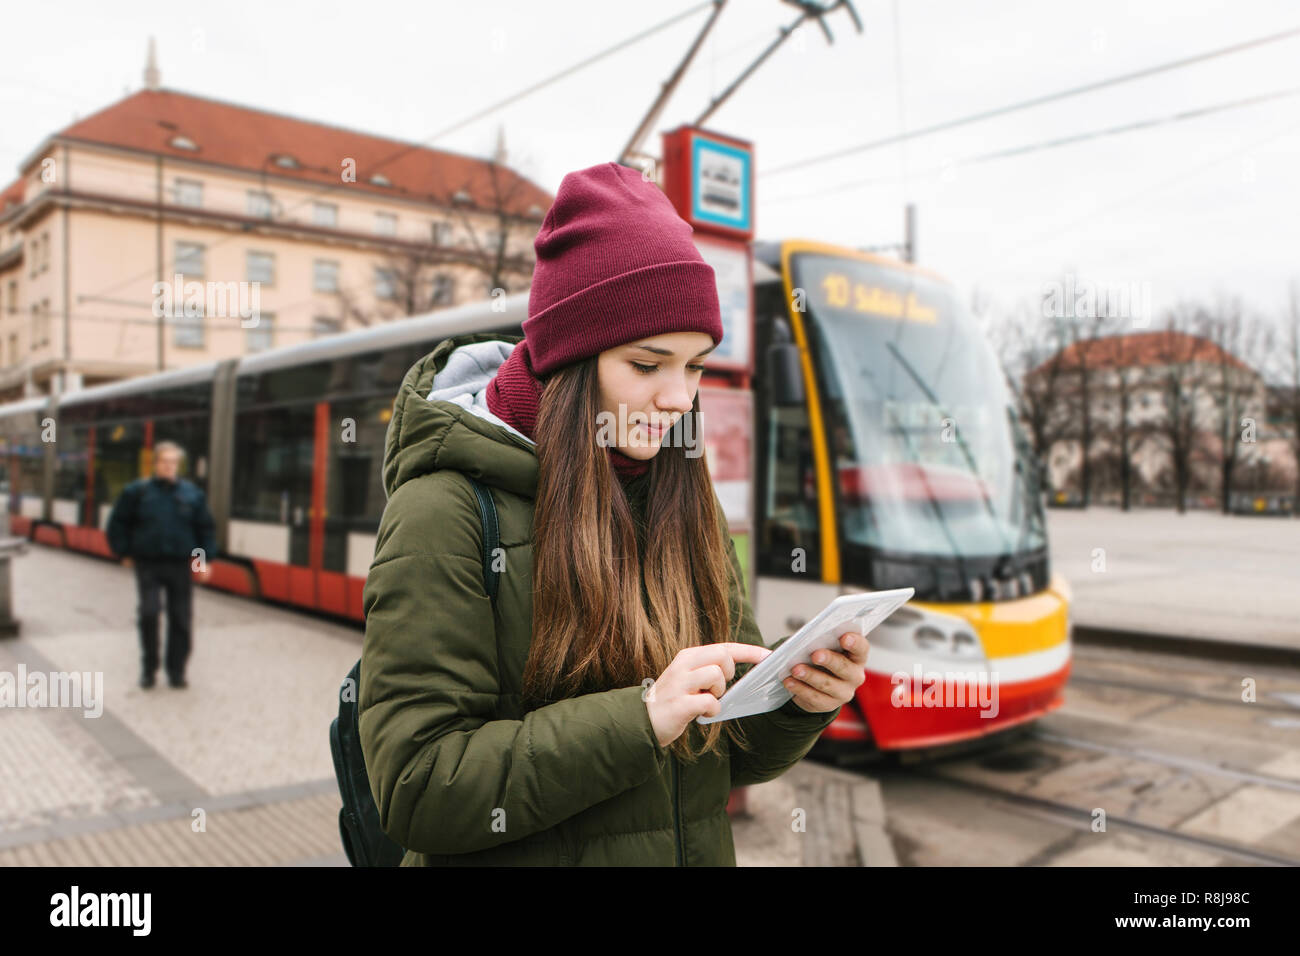 A girl or a tourist got off the tram stop from a tram and looks at a tablet city map or a mobile application. She uses the internet or she is online. In the background unrecognizable person and tram - Stock Image